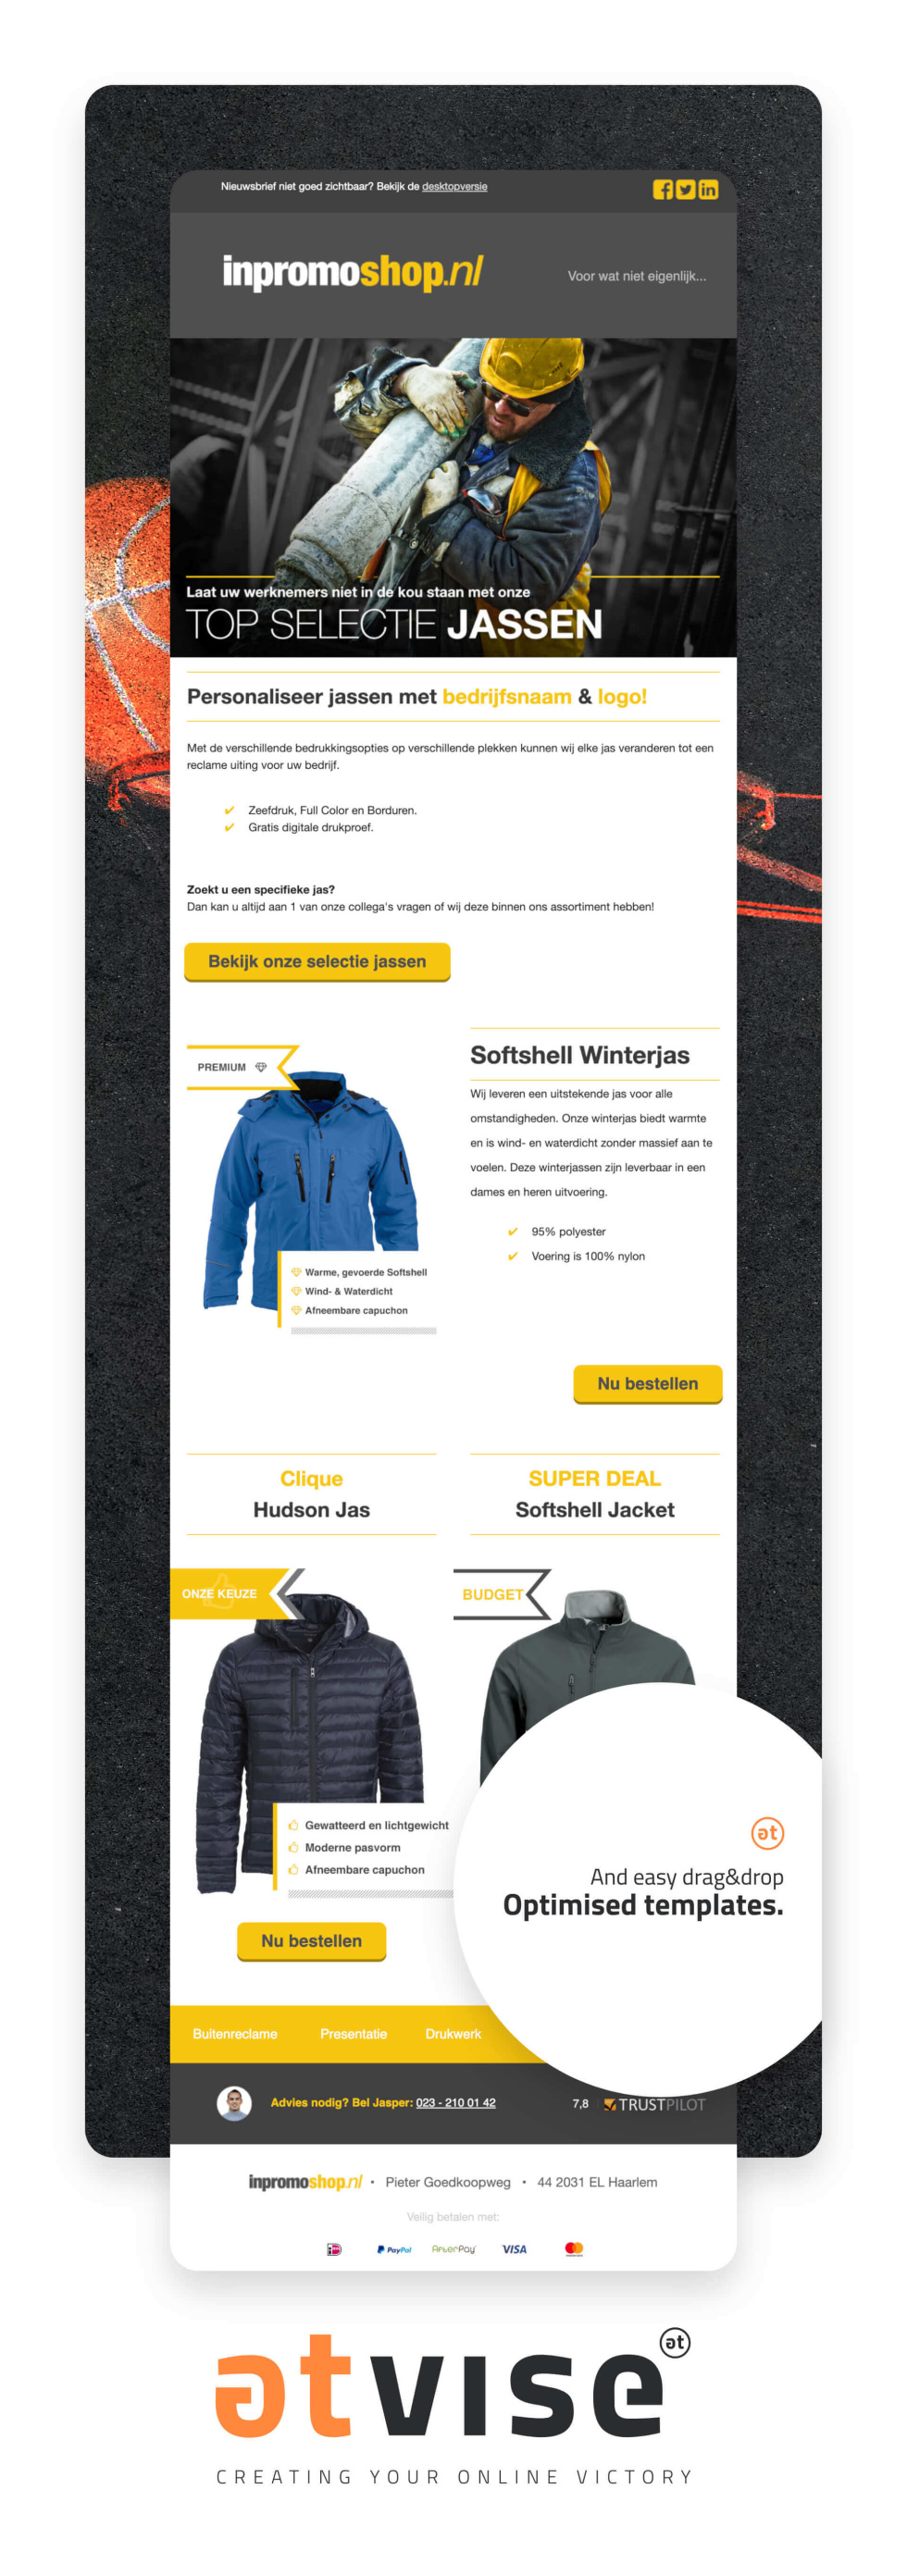 Newsletter template for winter jacket brand. Images of jackest with short descriptions and deals.